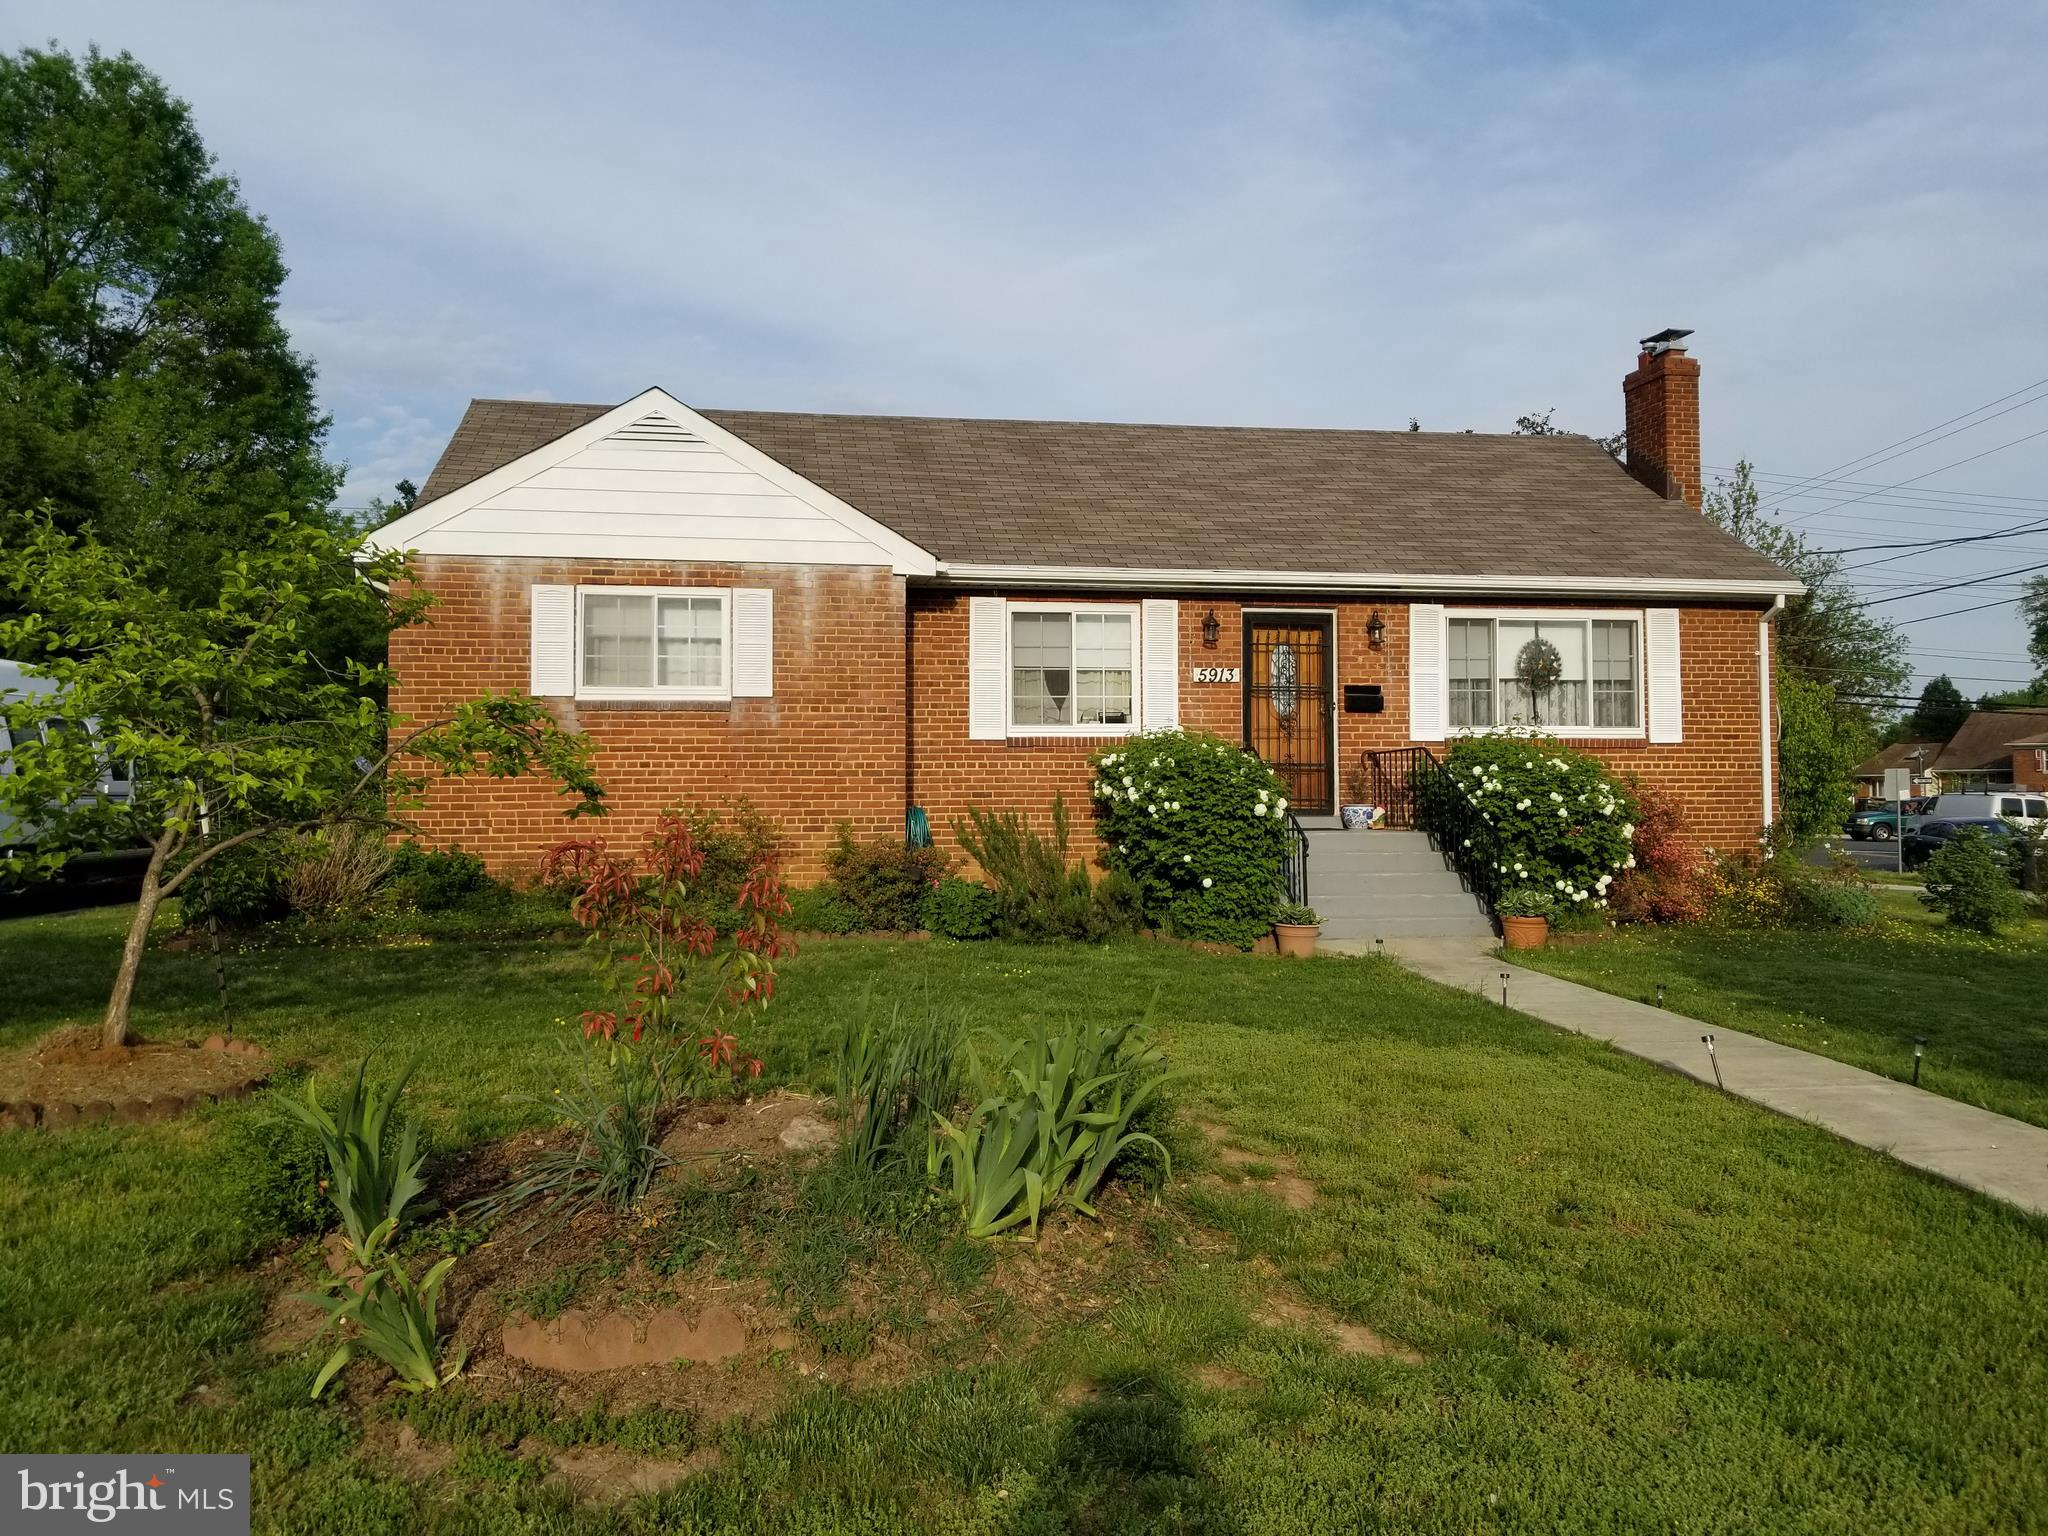 Beautiful single family house 5 bedrooms, 3 bathrooms. Basement fully finished. Lots of upgrades. See to appreciate, easy to show